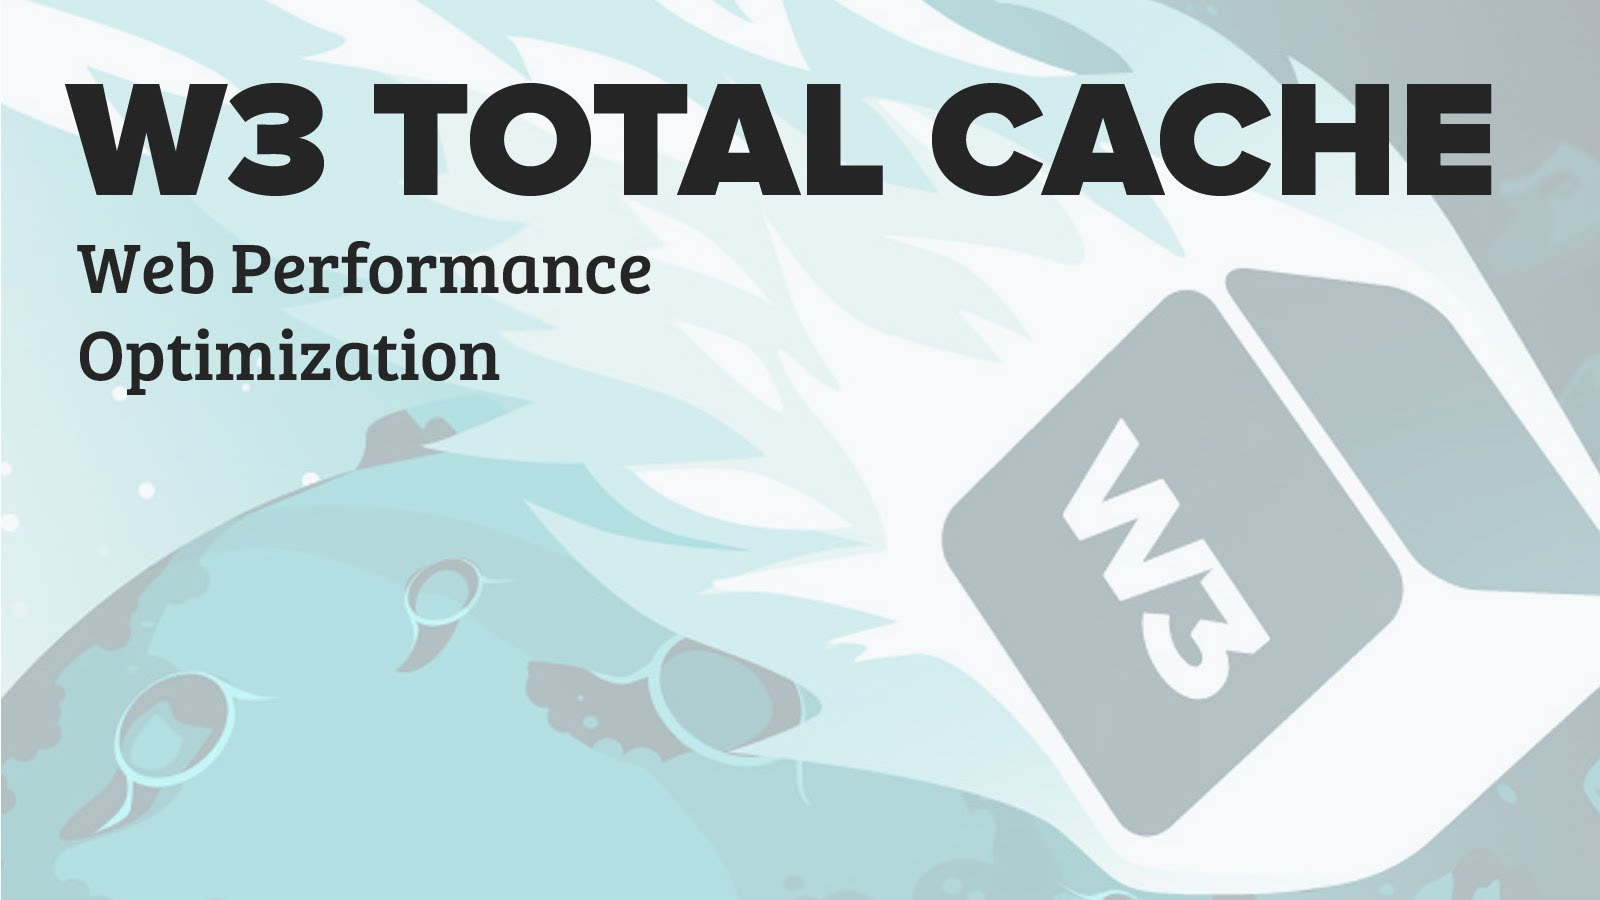 5.W3 Total Cache WordPress Plugin